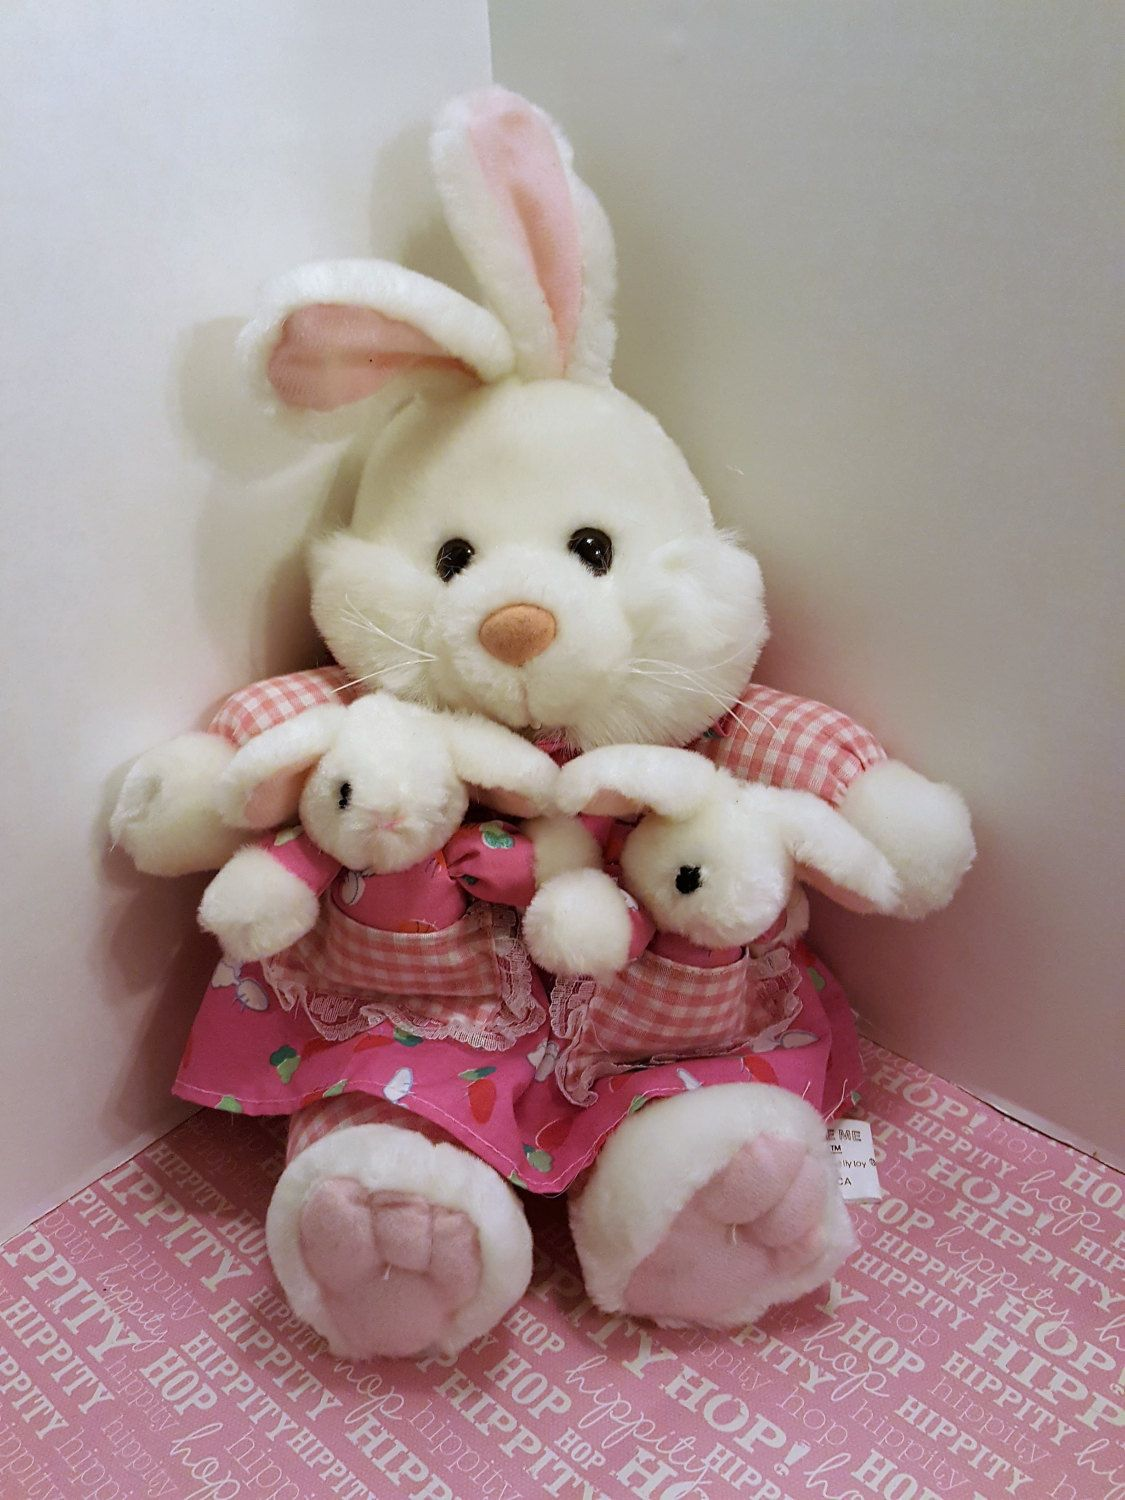 Vintage kuddle me toys momma bunny babies excellent gift vintage kuddle me toys momma bunny babies excellent gift giving condition easter spring plush adorable by onevintagejunky on etsy negle Choice Image